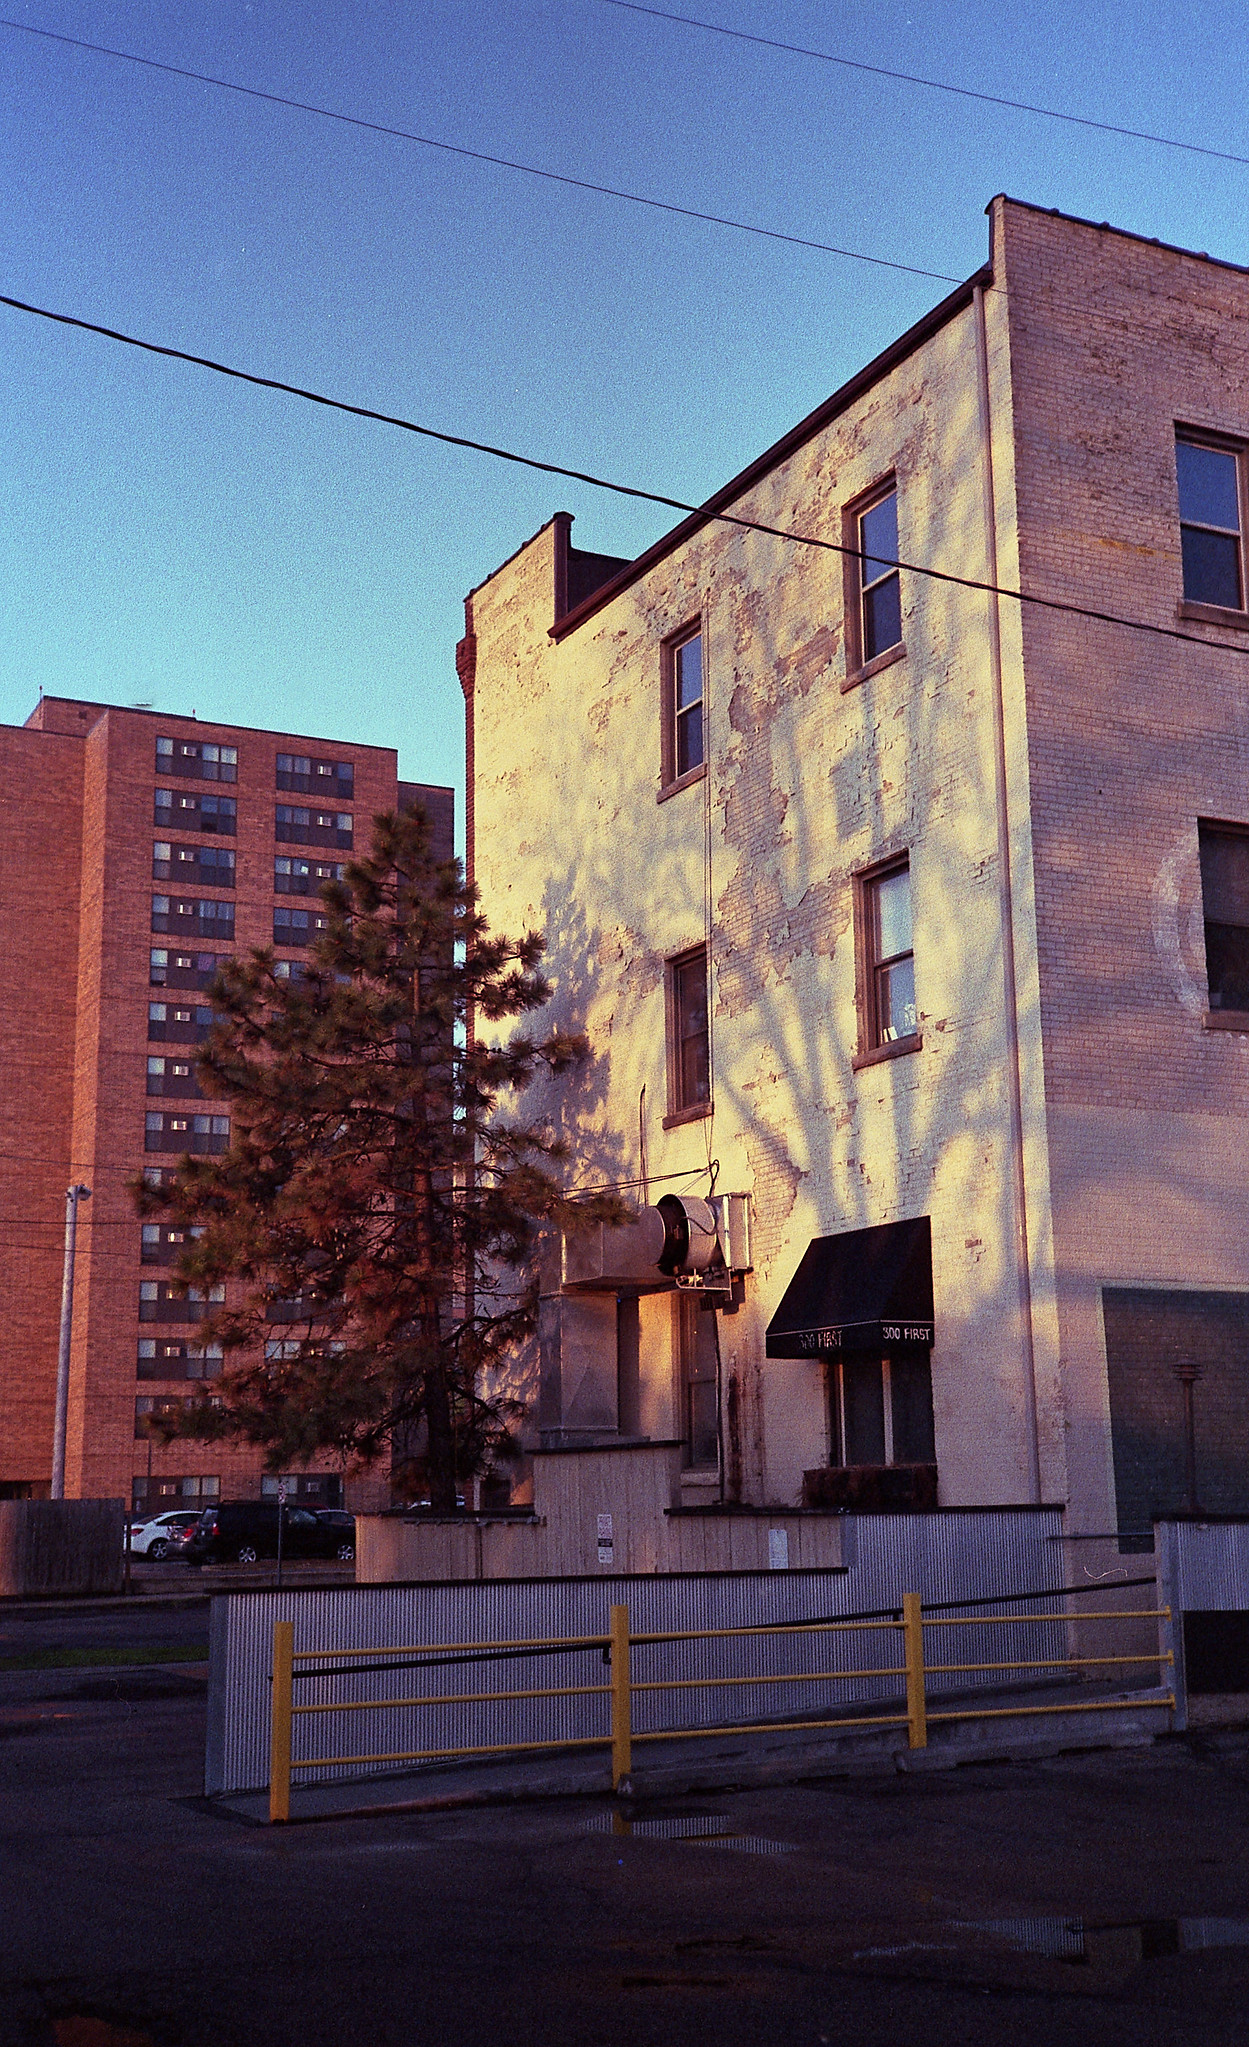 Fuji Superia 400. My therapists building is incredibly photogenic in the morning light.